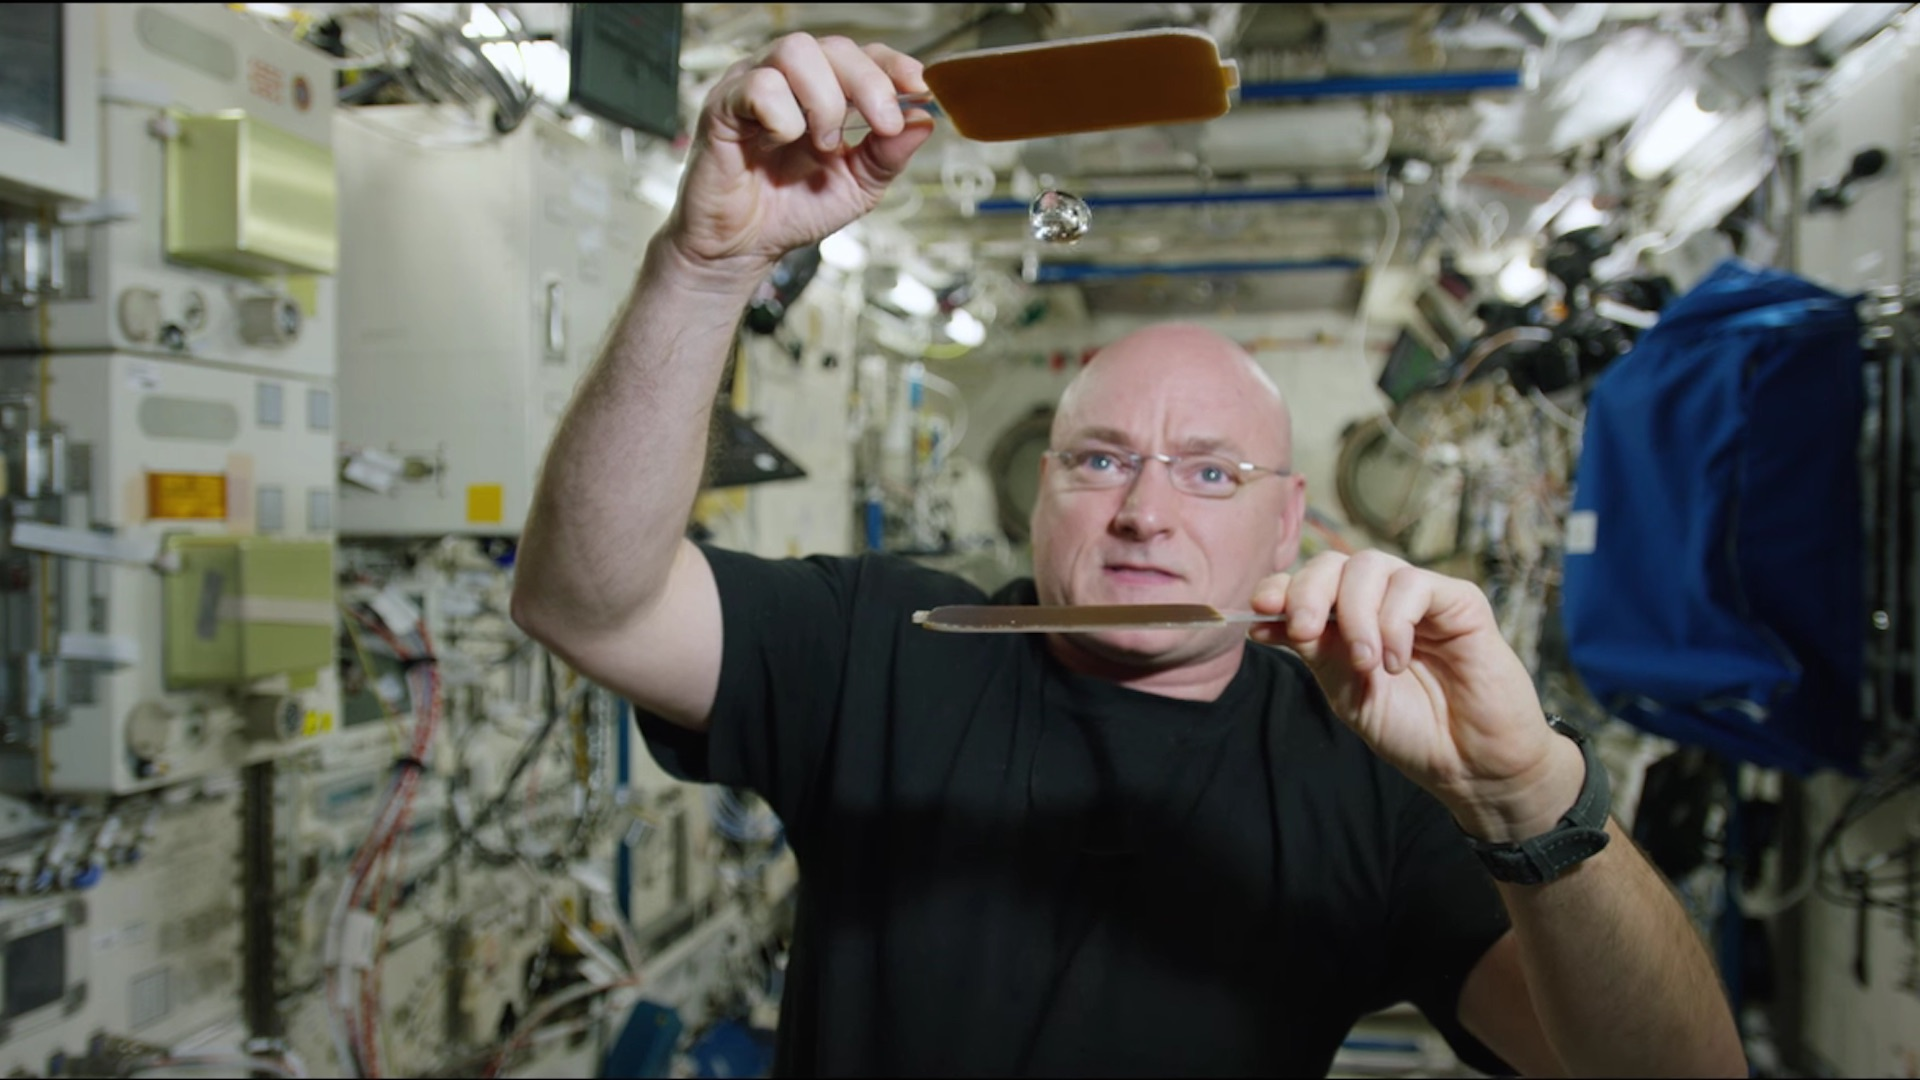 Watch astronaut Scott Kelly play ping pong with a water droplet